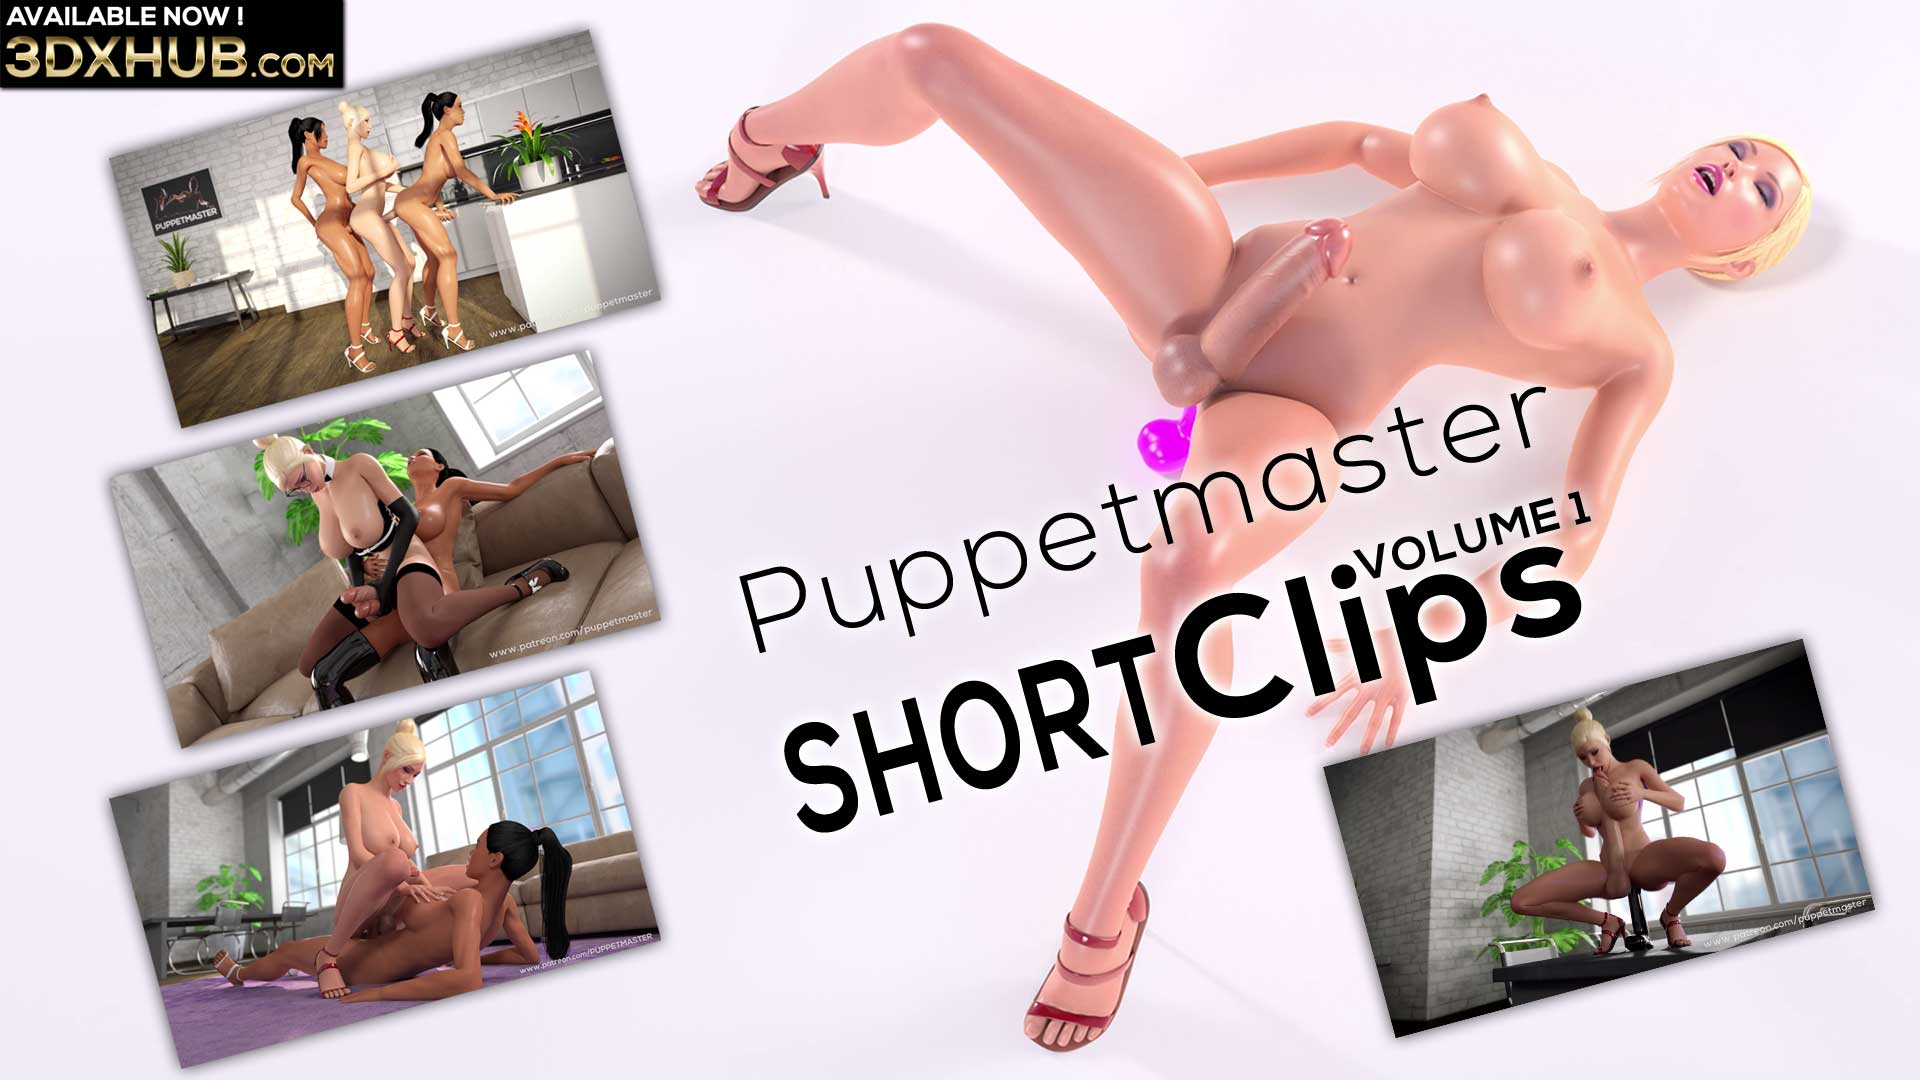 Puppetmaster Shortclips - Volume 1